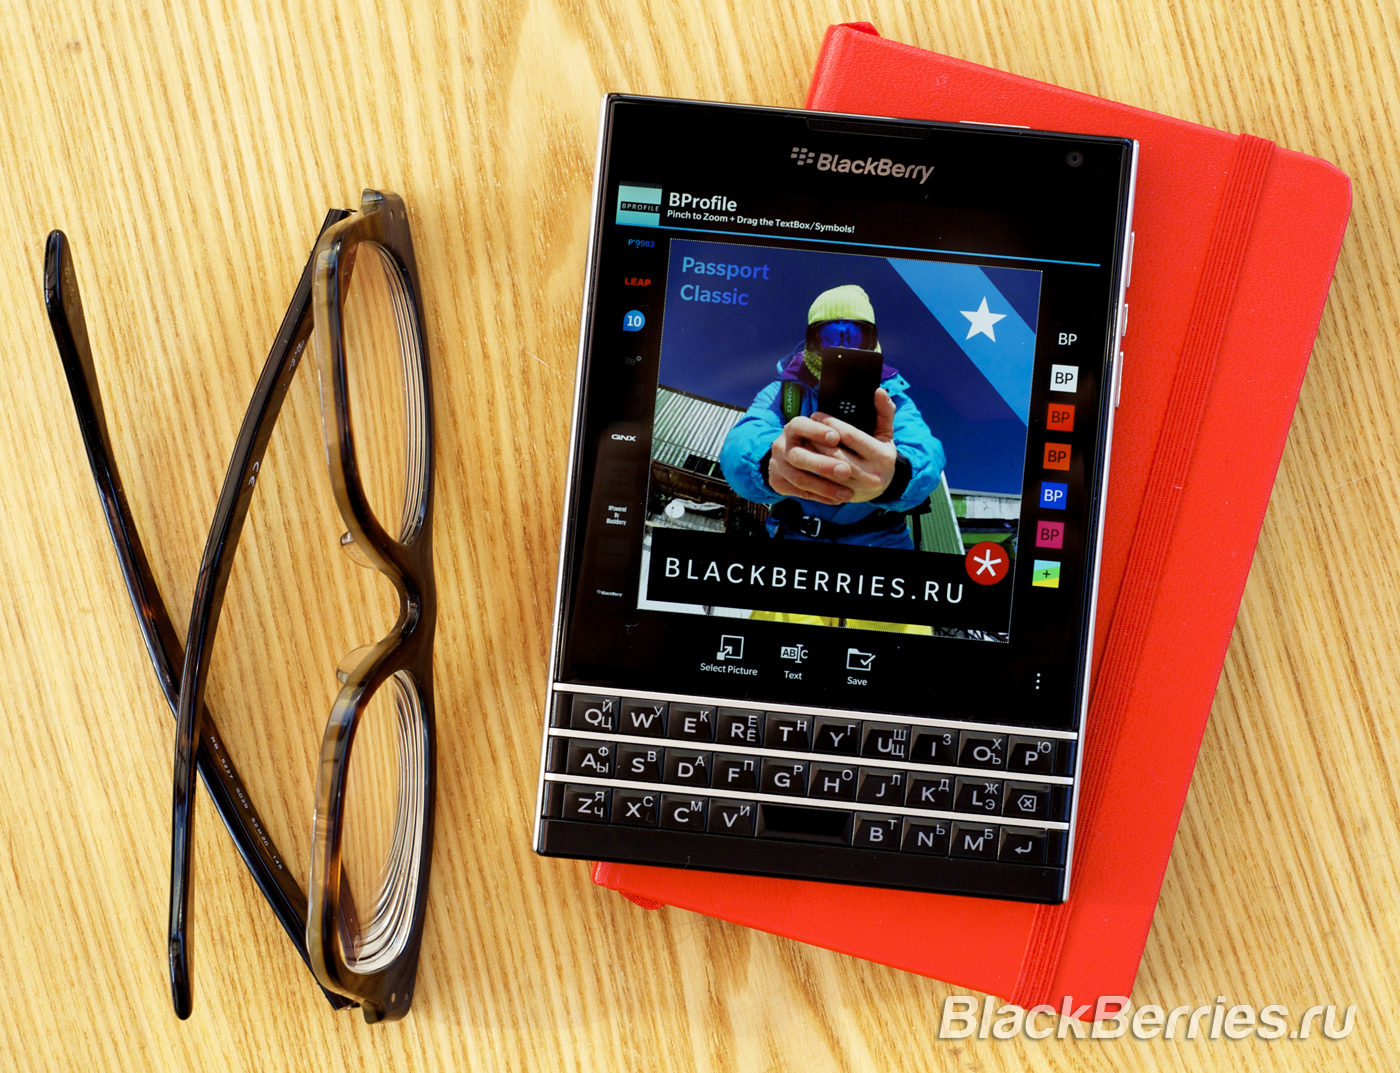 BlackBerry-Passport-Bprofile